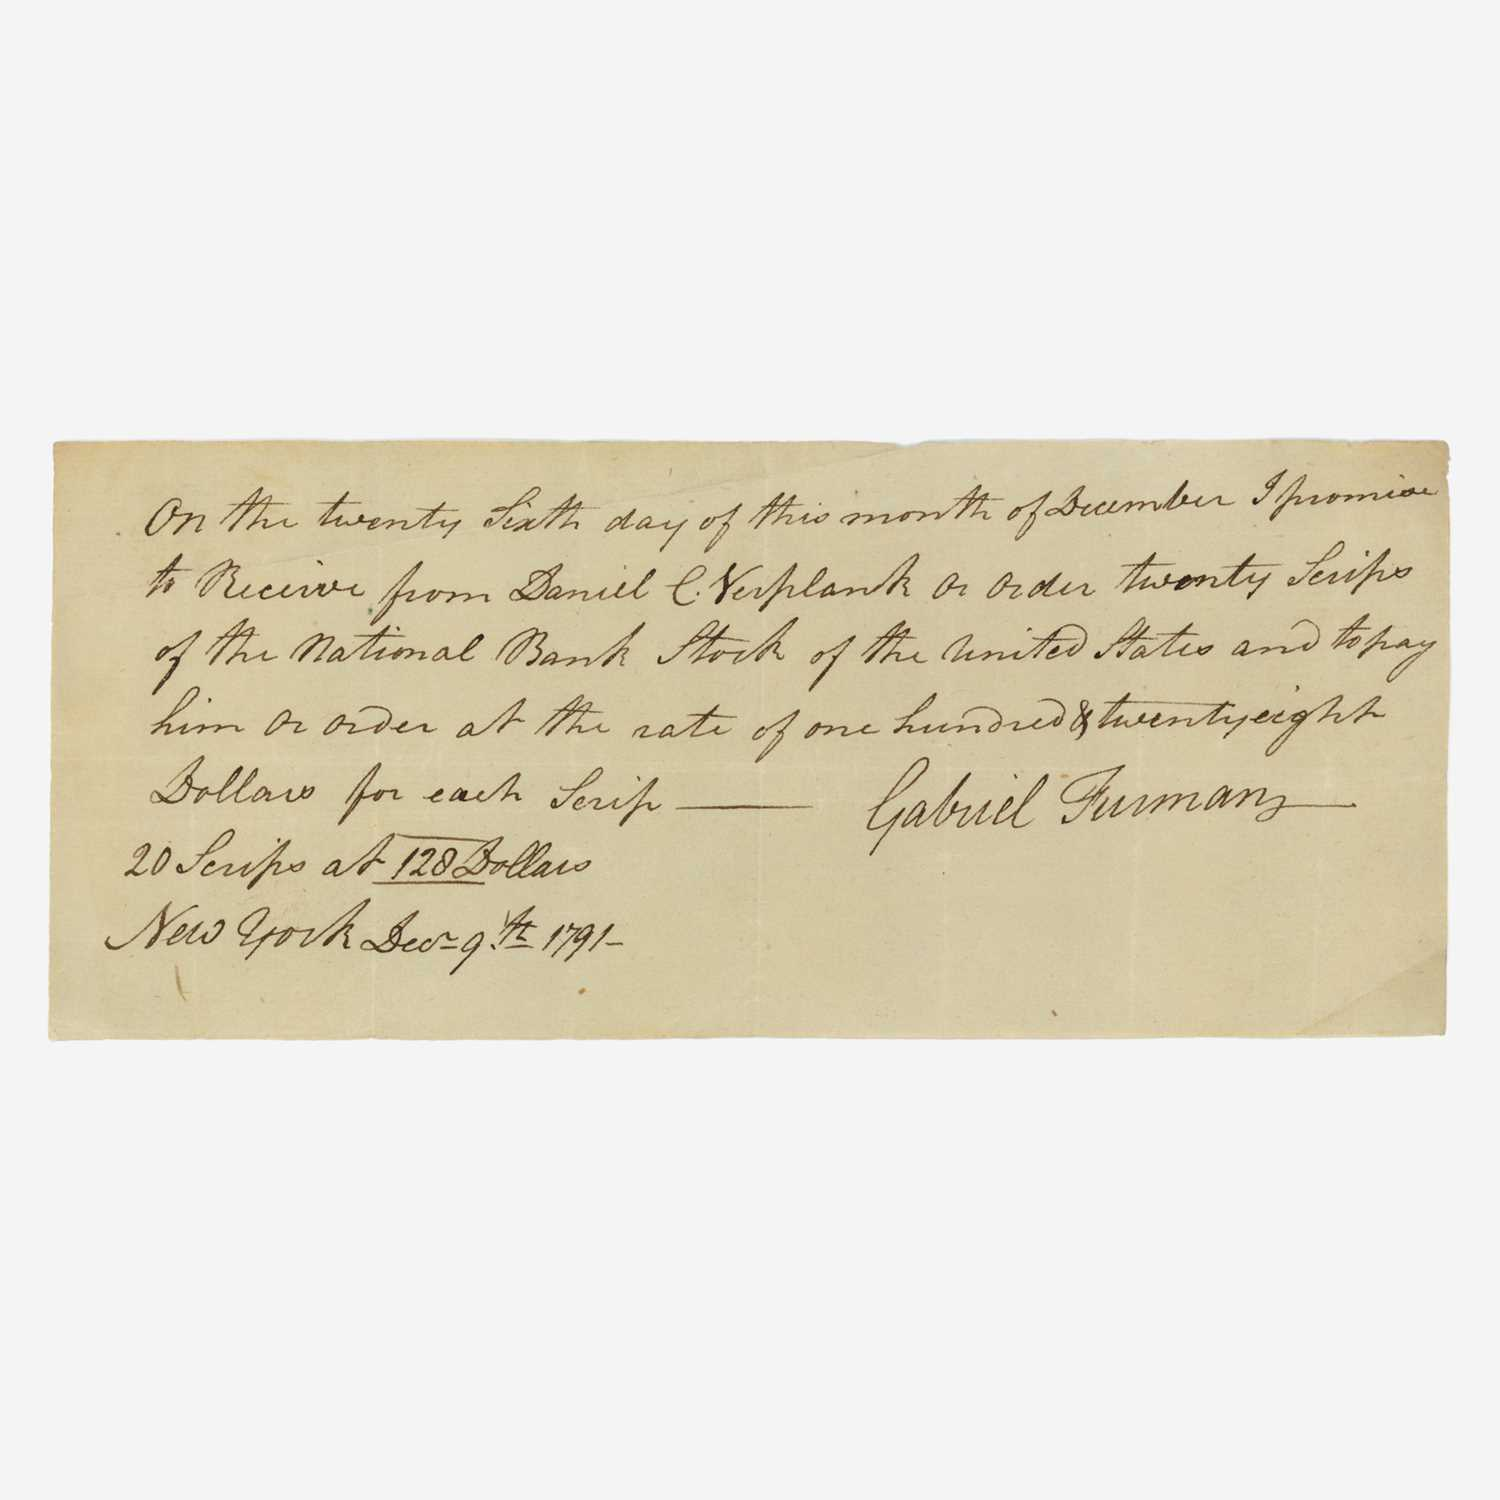 Lot 15 - [Hamilton, Alexander] [First Bank of the United States]